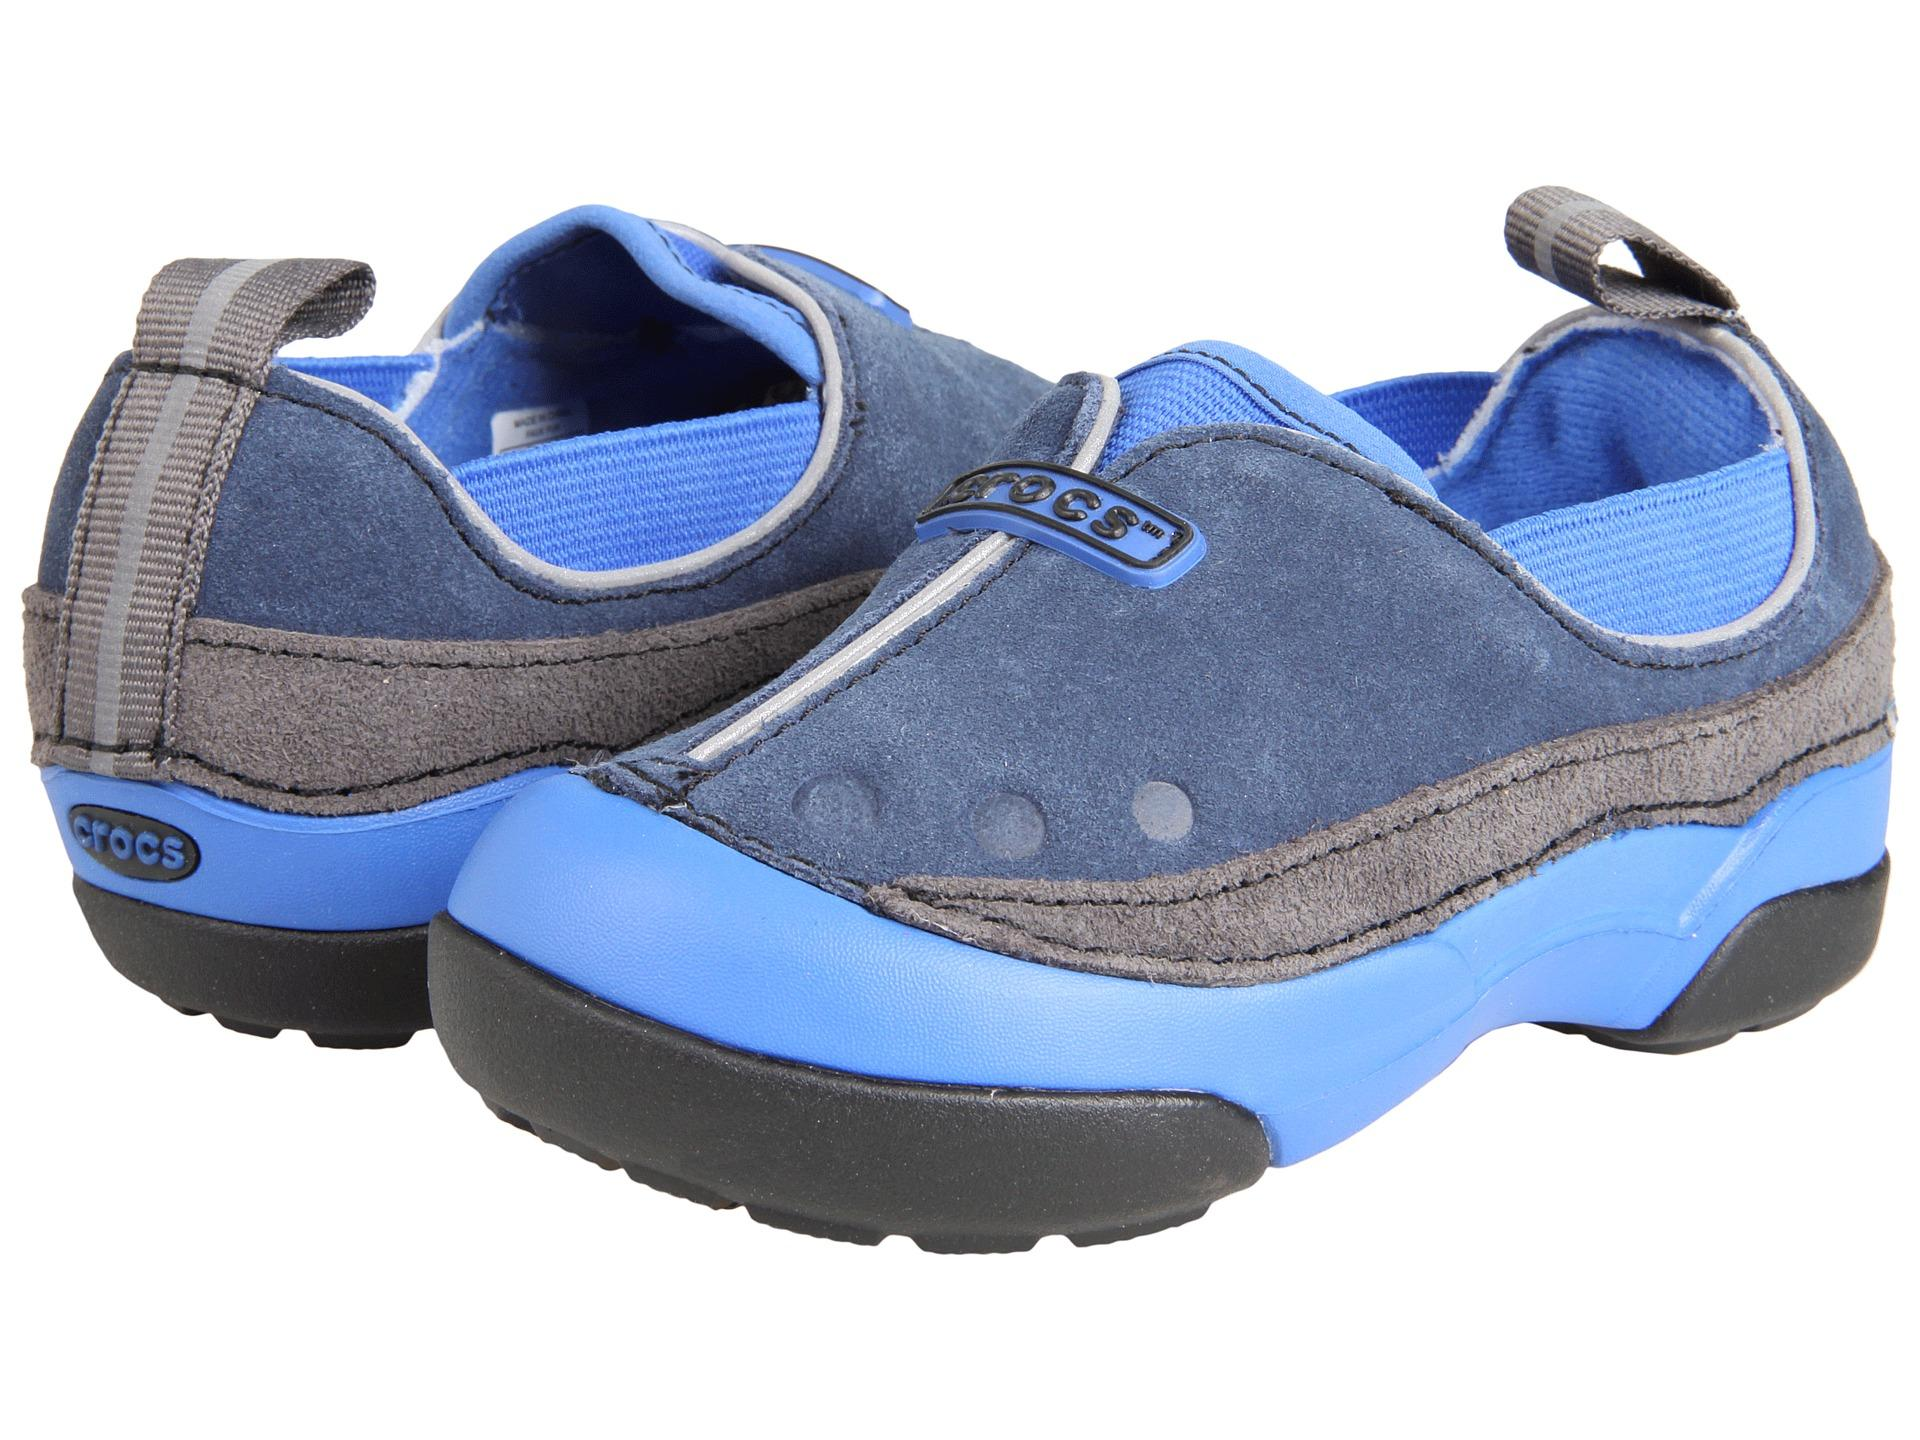 Crocs Kids Dawson Slip-On (Toddler/Little Kid)